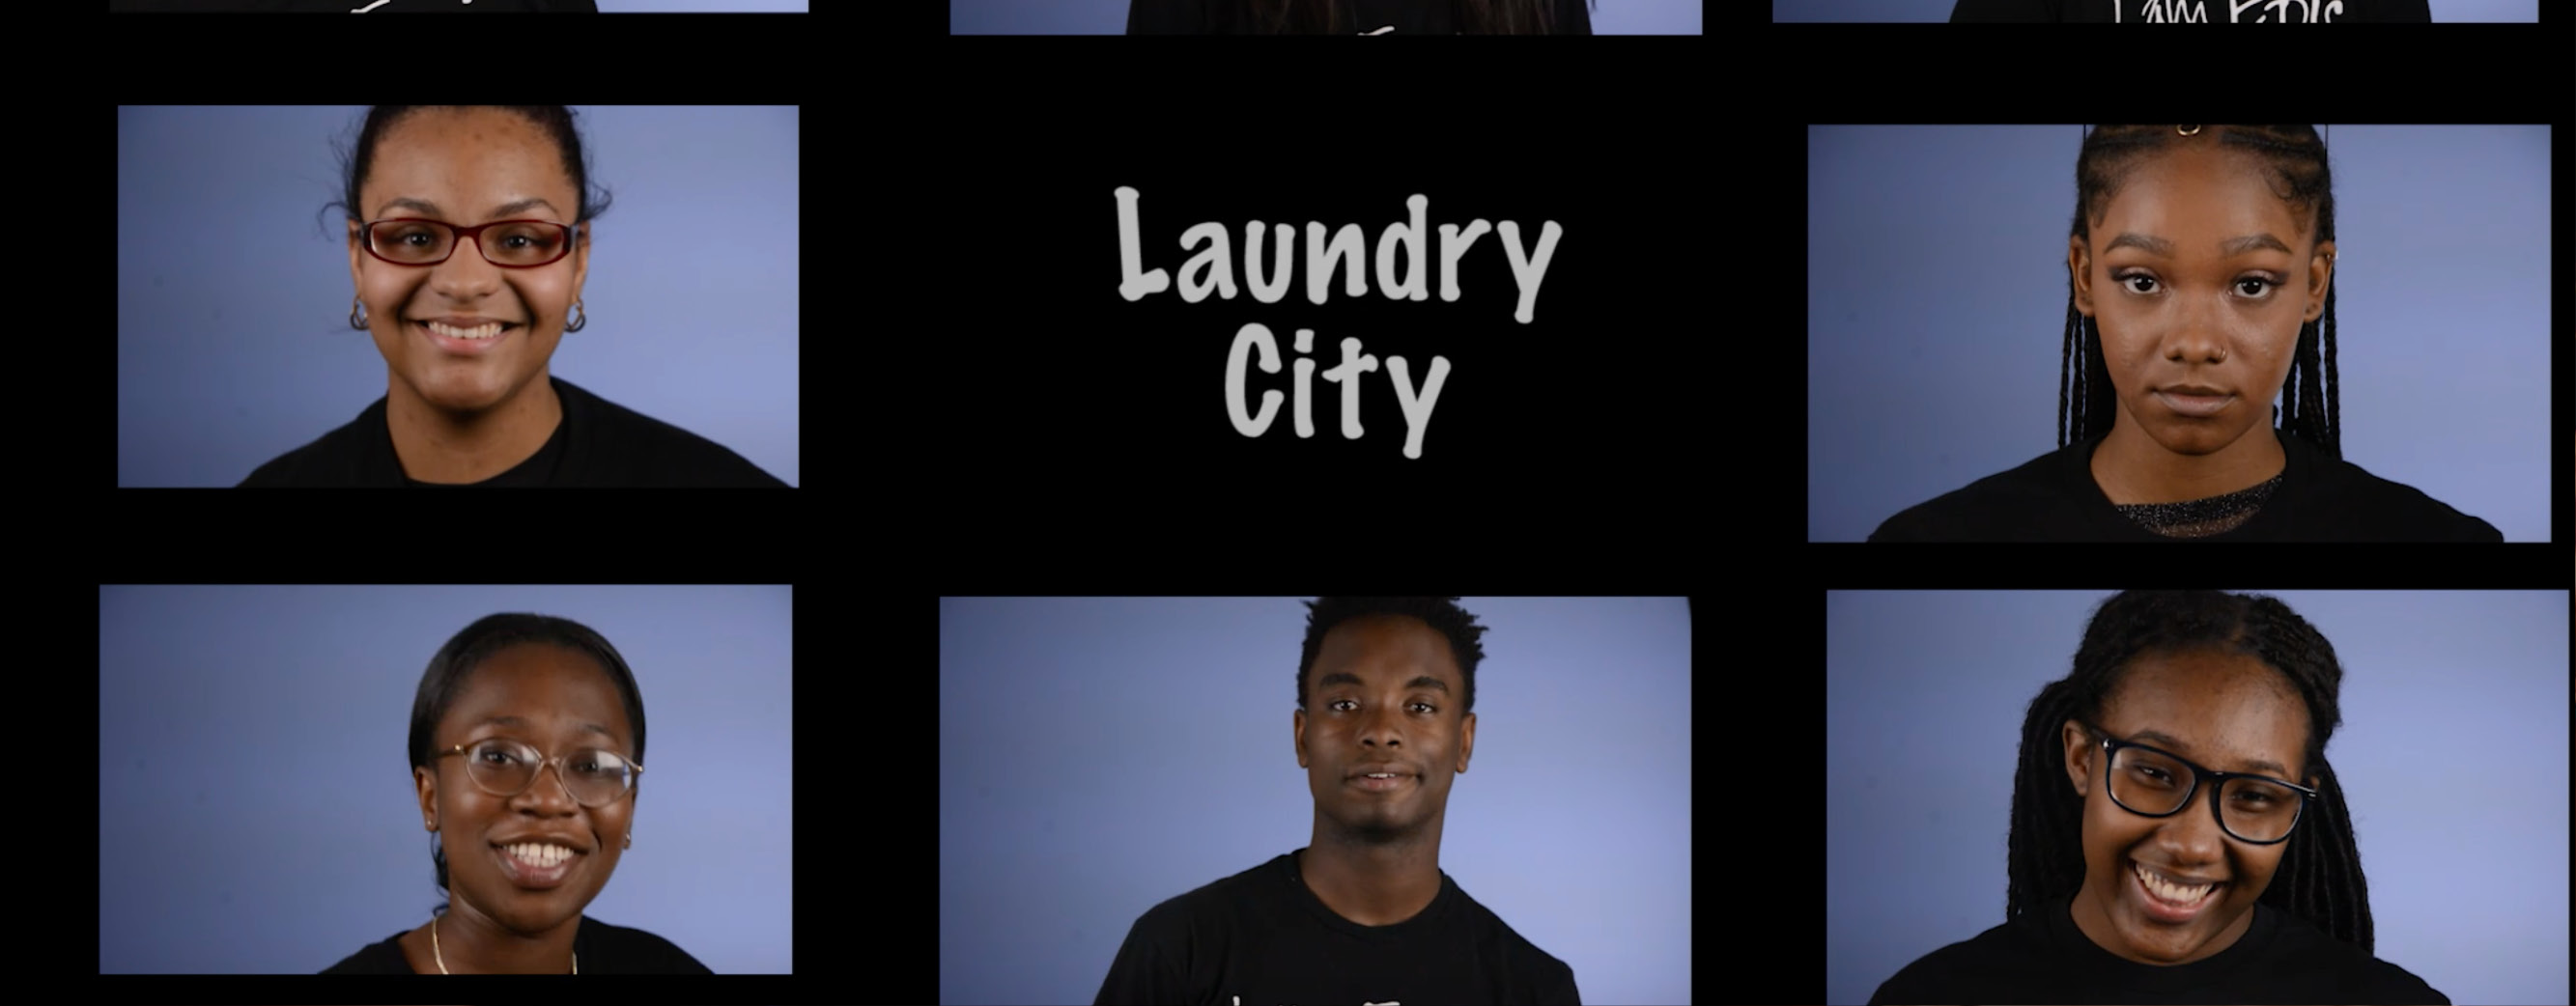 <p>You&#8217;ve seen them on an off-Broadway stage, in renowned academic conferences, and in many schools and colleges around the U.S. Now, Laundry City continues to spread the discussion on school segregation and equality by taking over the music charts! Here's Laundry City&#8217;s music video world premiere!  About Laundry City [&hellip;]</p>